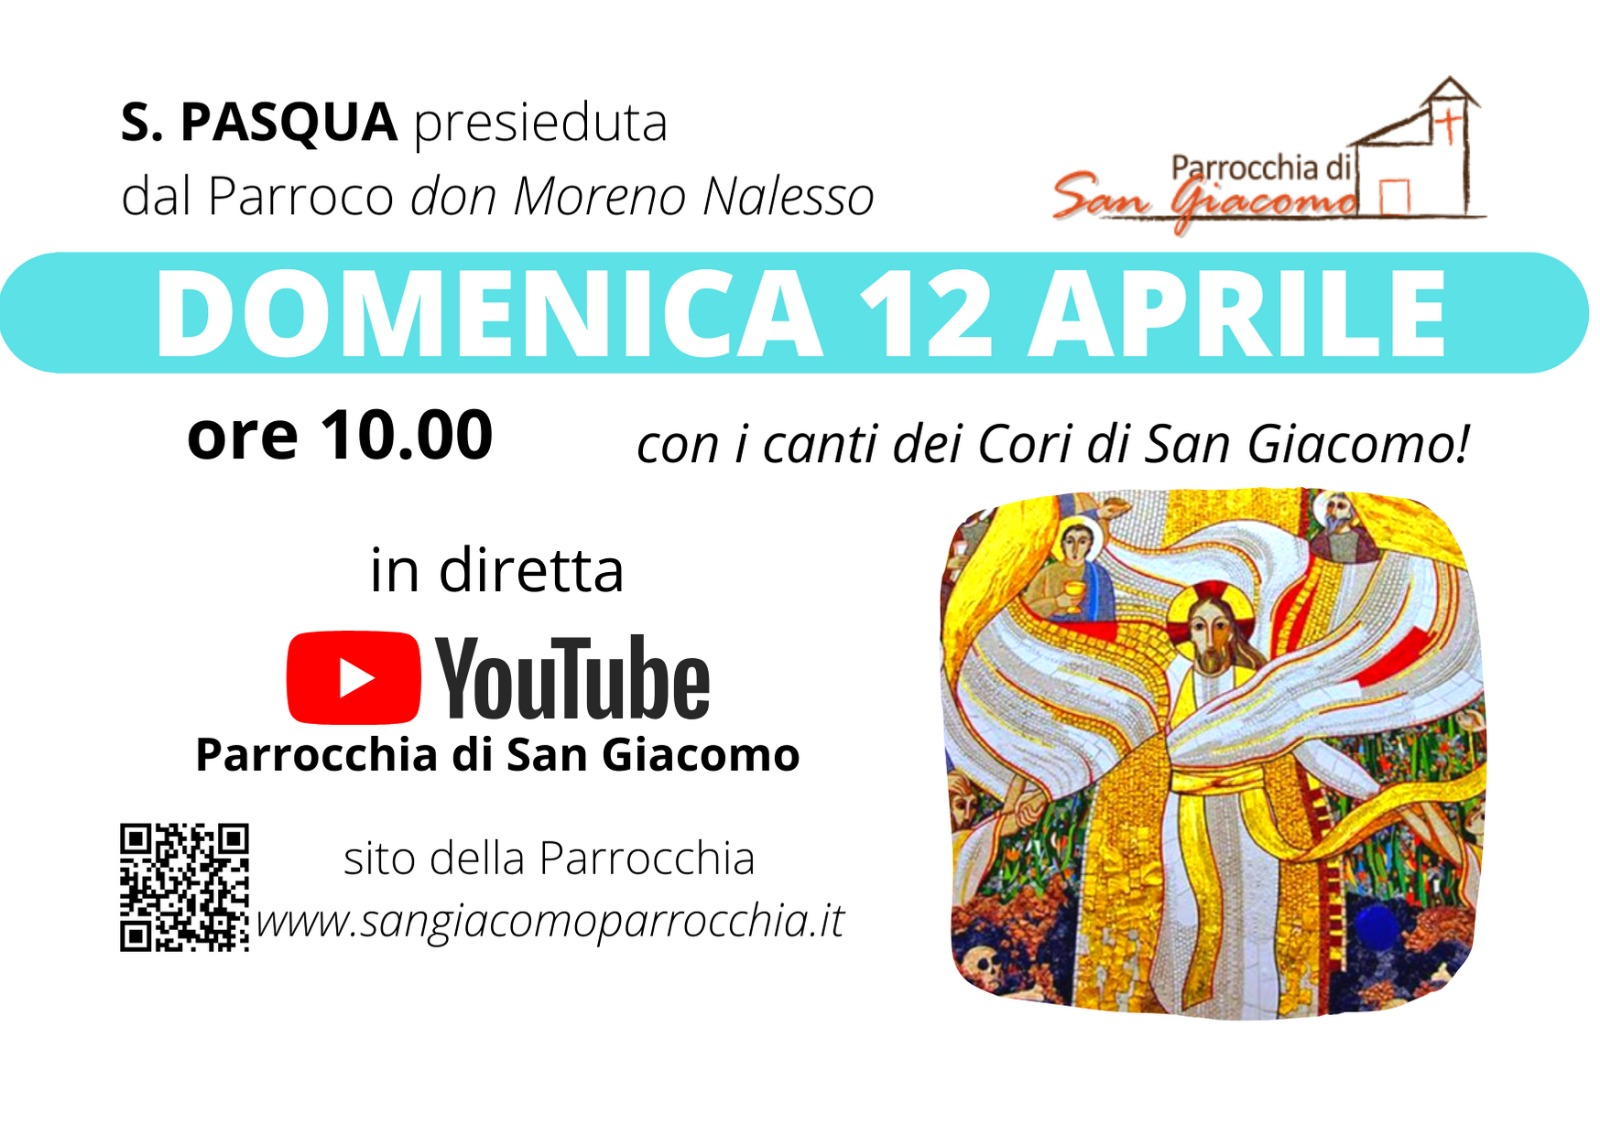 S. MESSA IN STREAMING 12 APRILE